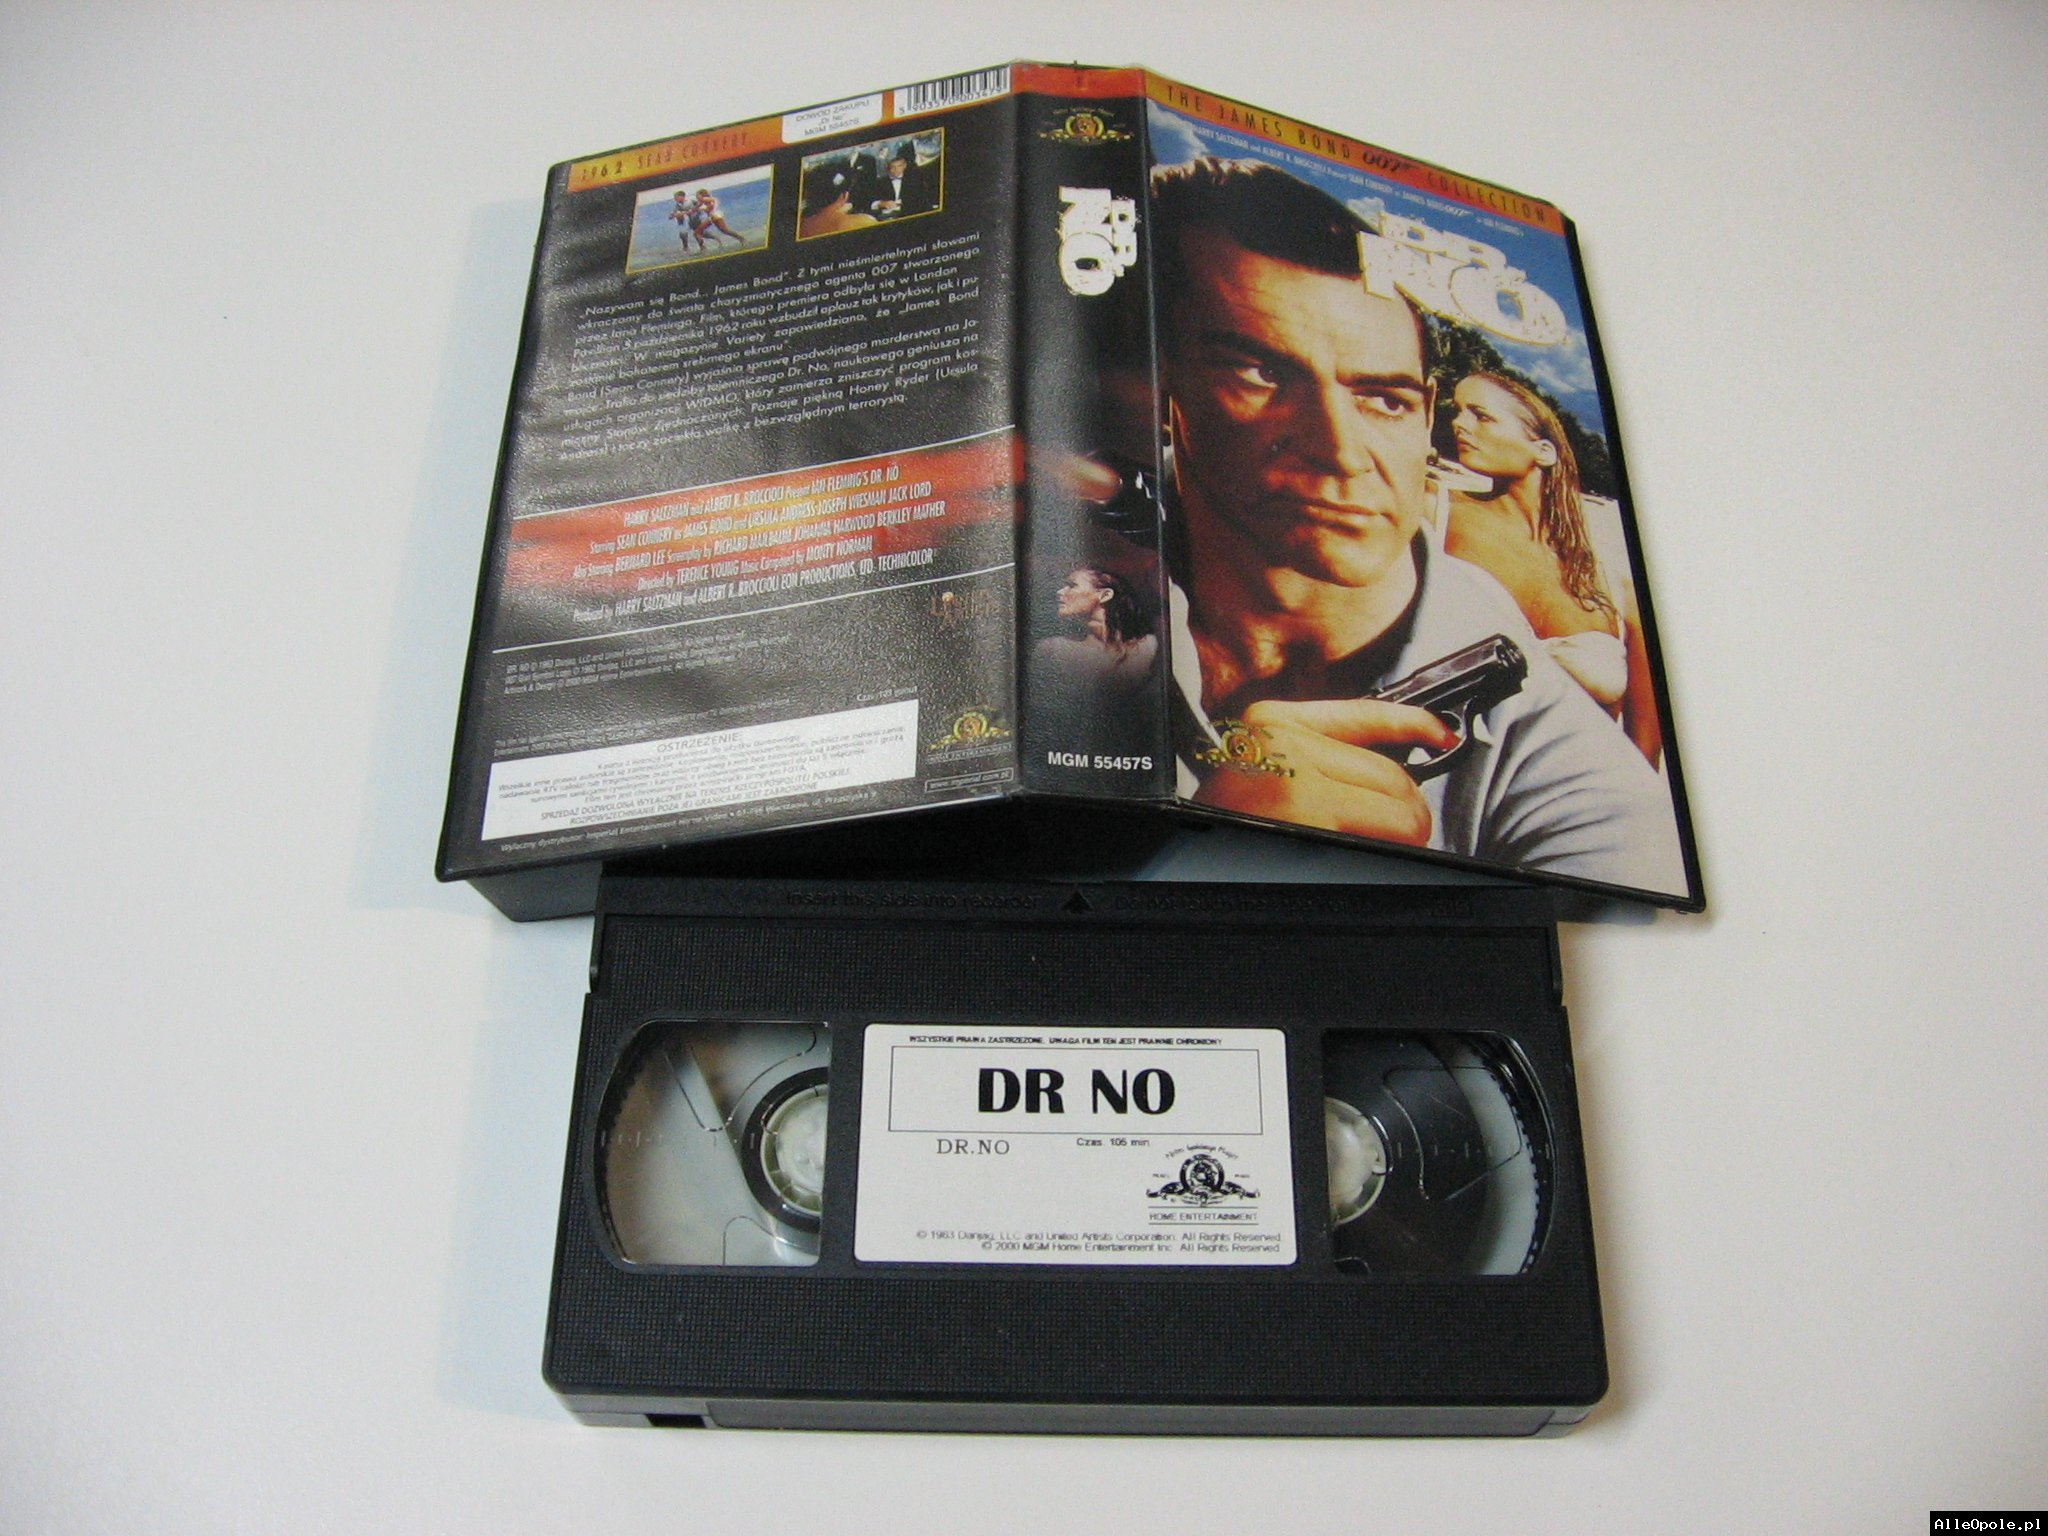 007 DR NO - VHS Kaseta Video - Opole 1739